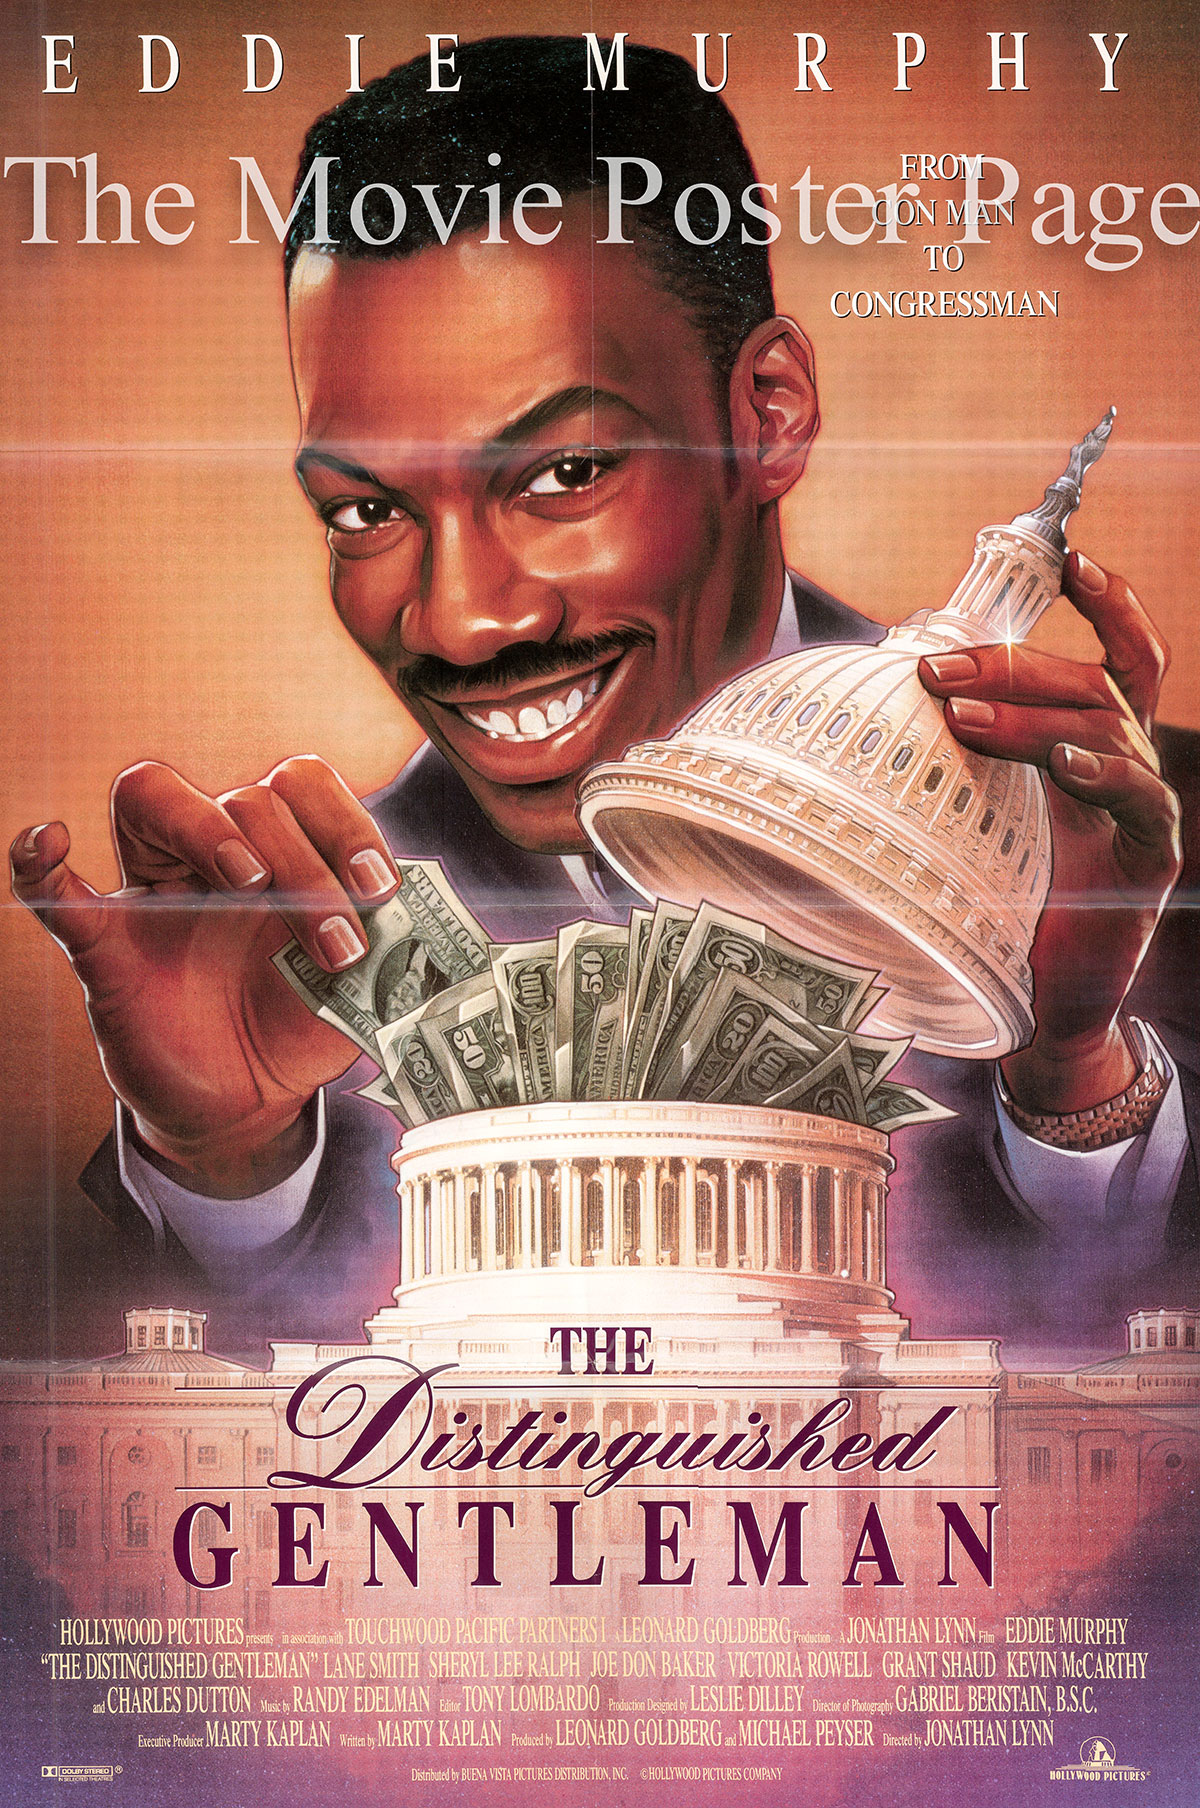 Pictured is a US one-sheet promotional poster for the 1992 Jonathan Lynn film The Distinguished Gentleman starring Eddie Murphy.